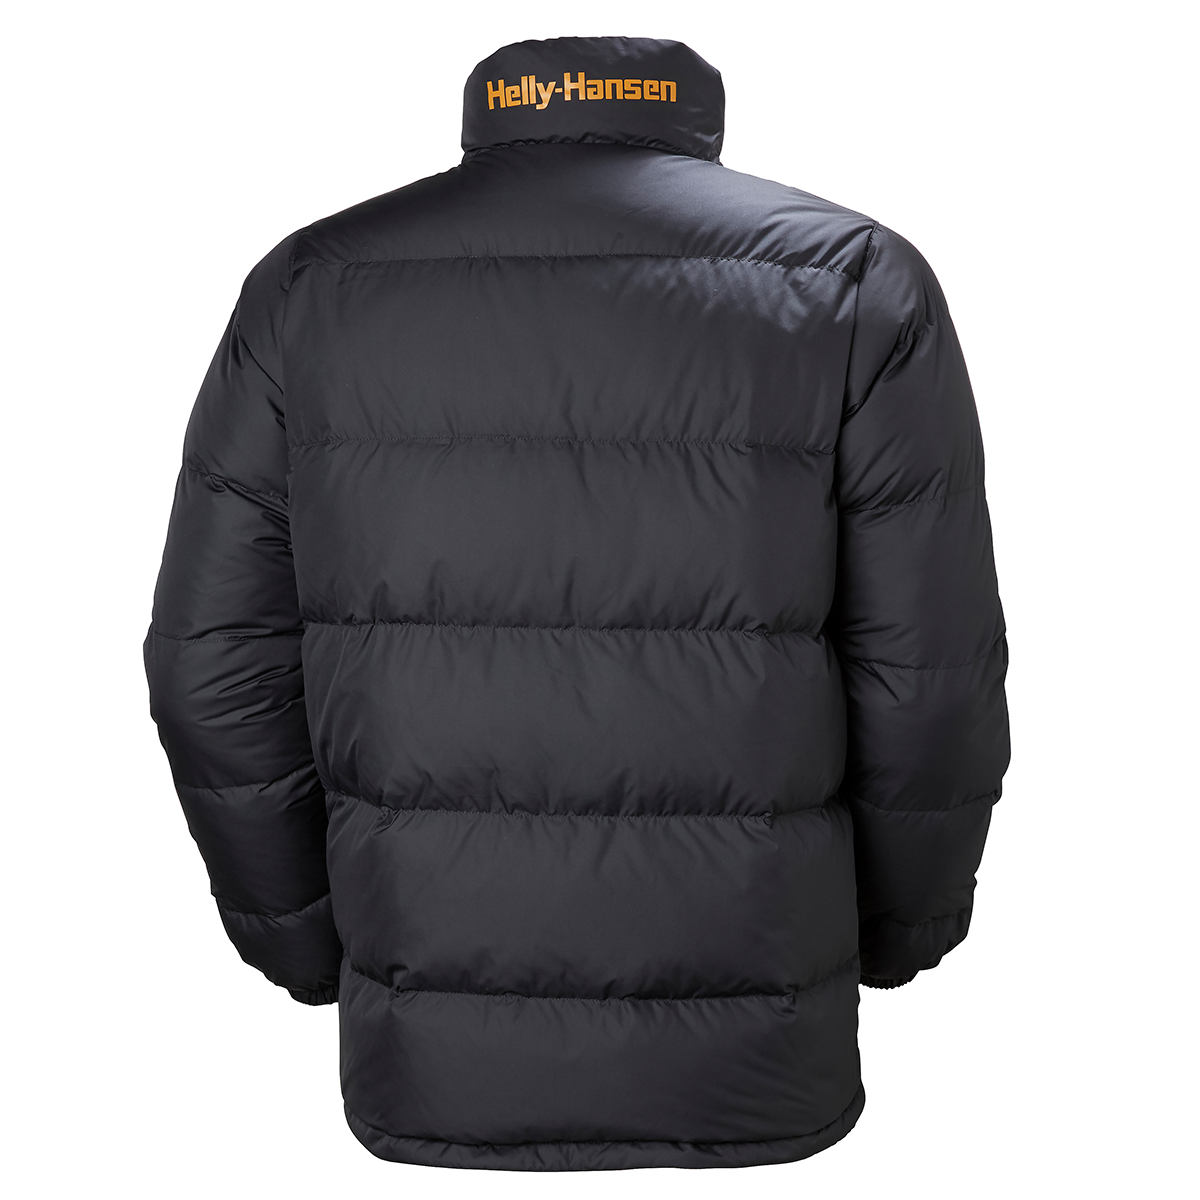 Helly Hansen Reversible Down Jacket, Orange & Navy